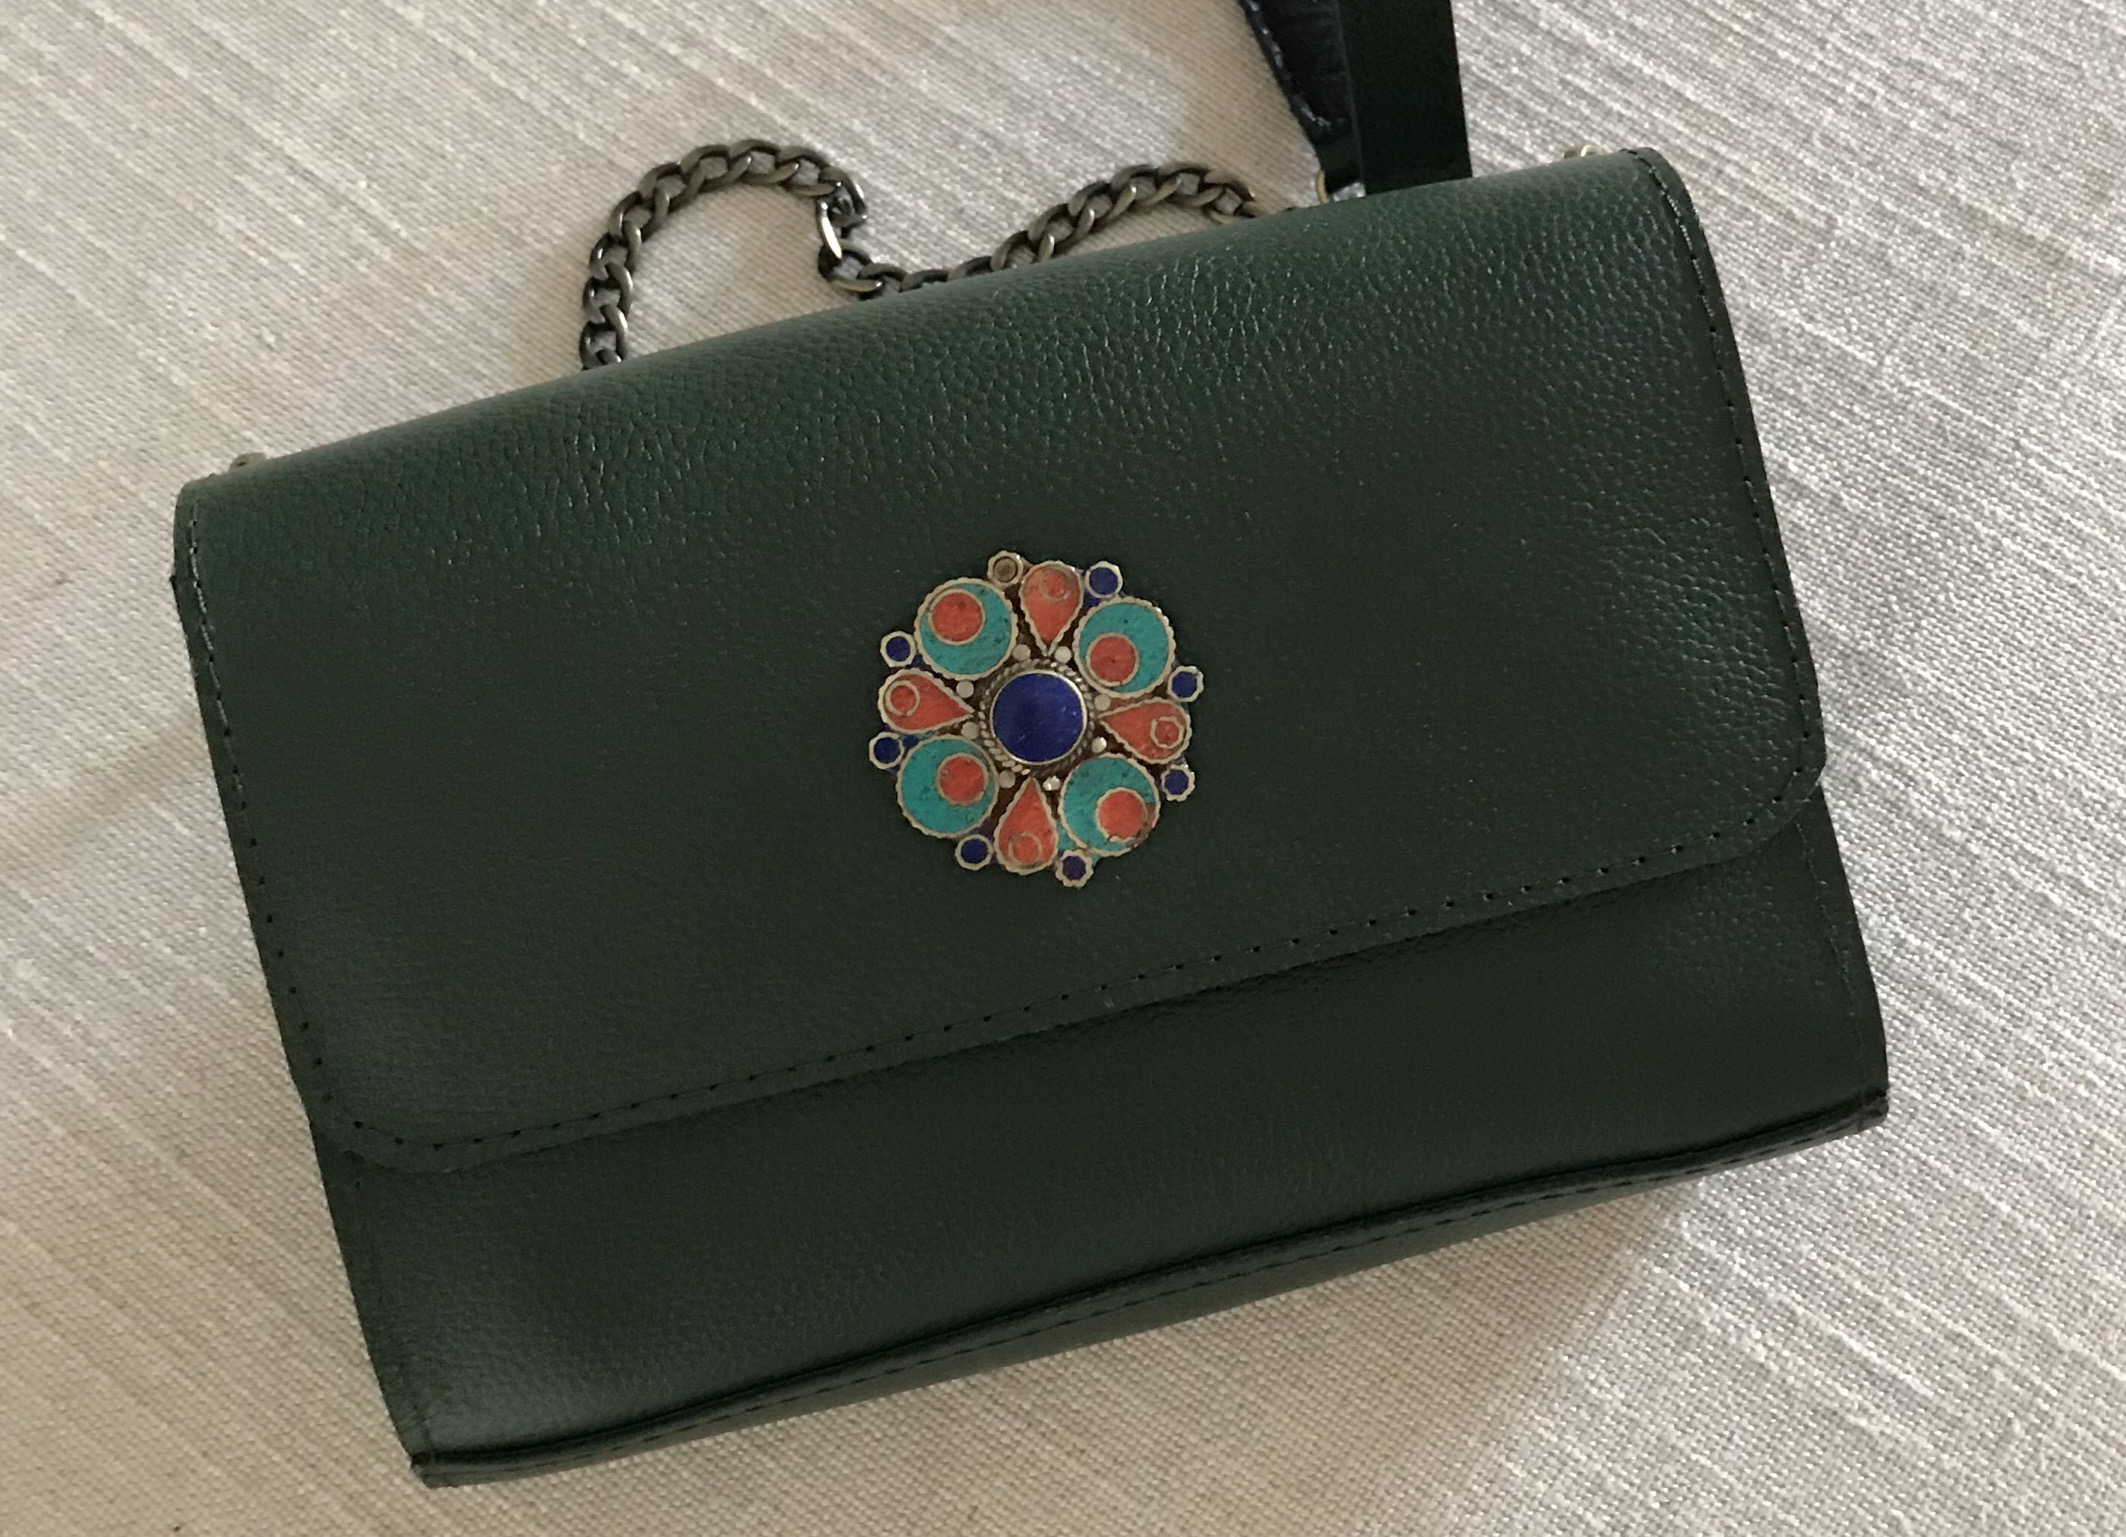 Jewelry bag leather green with Jewelery